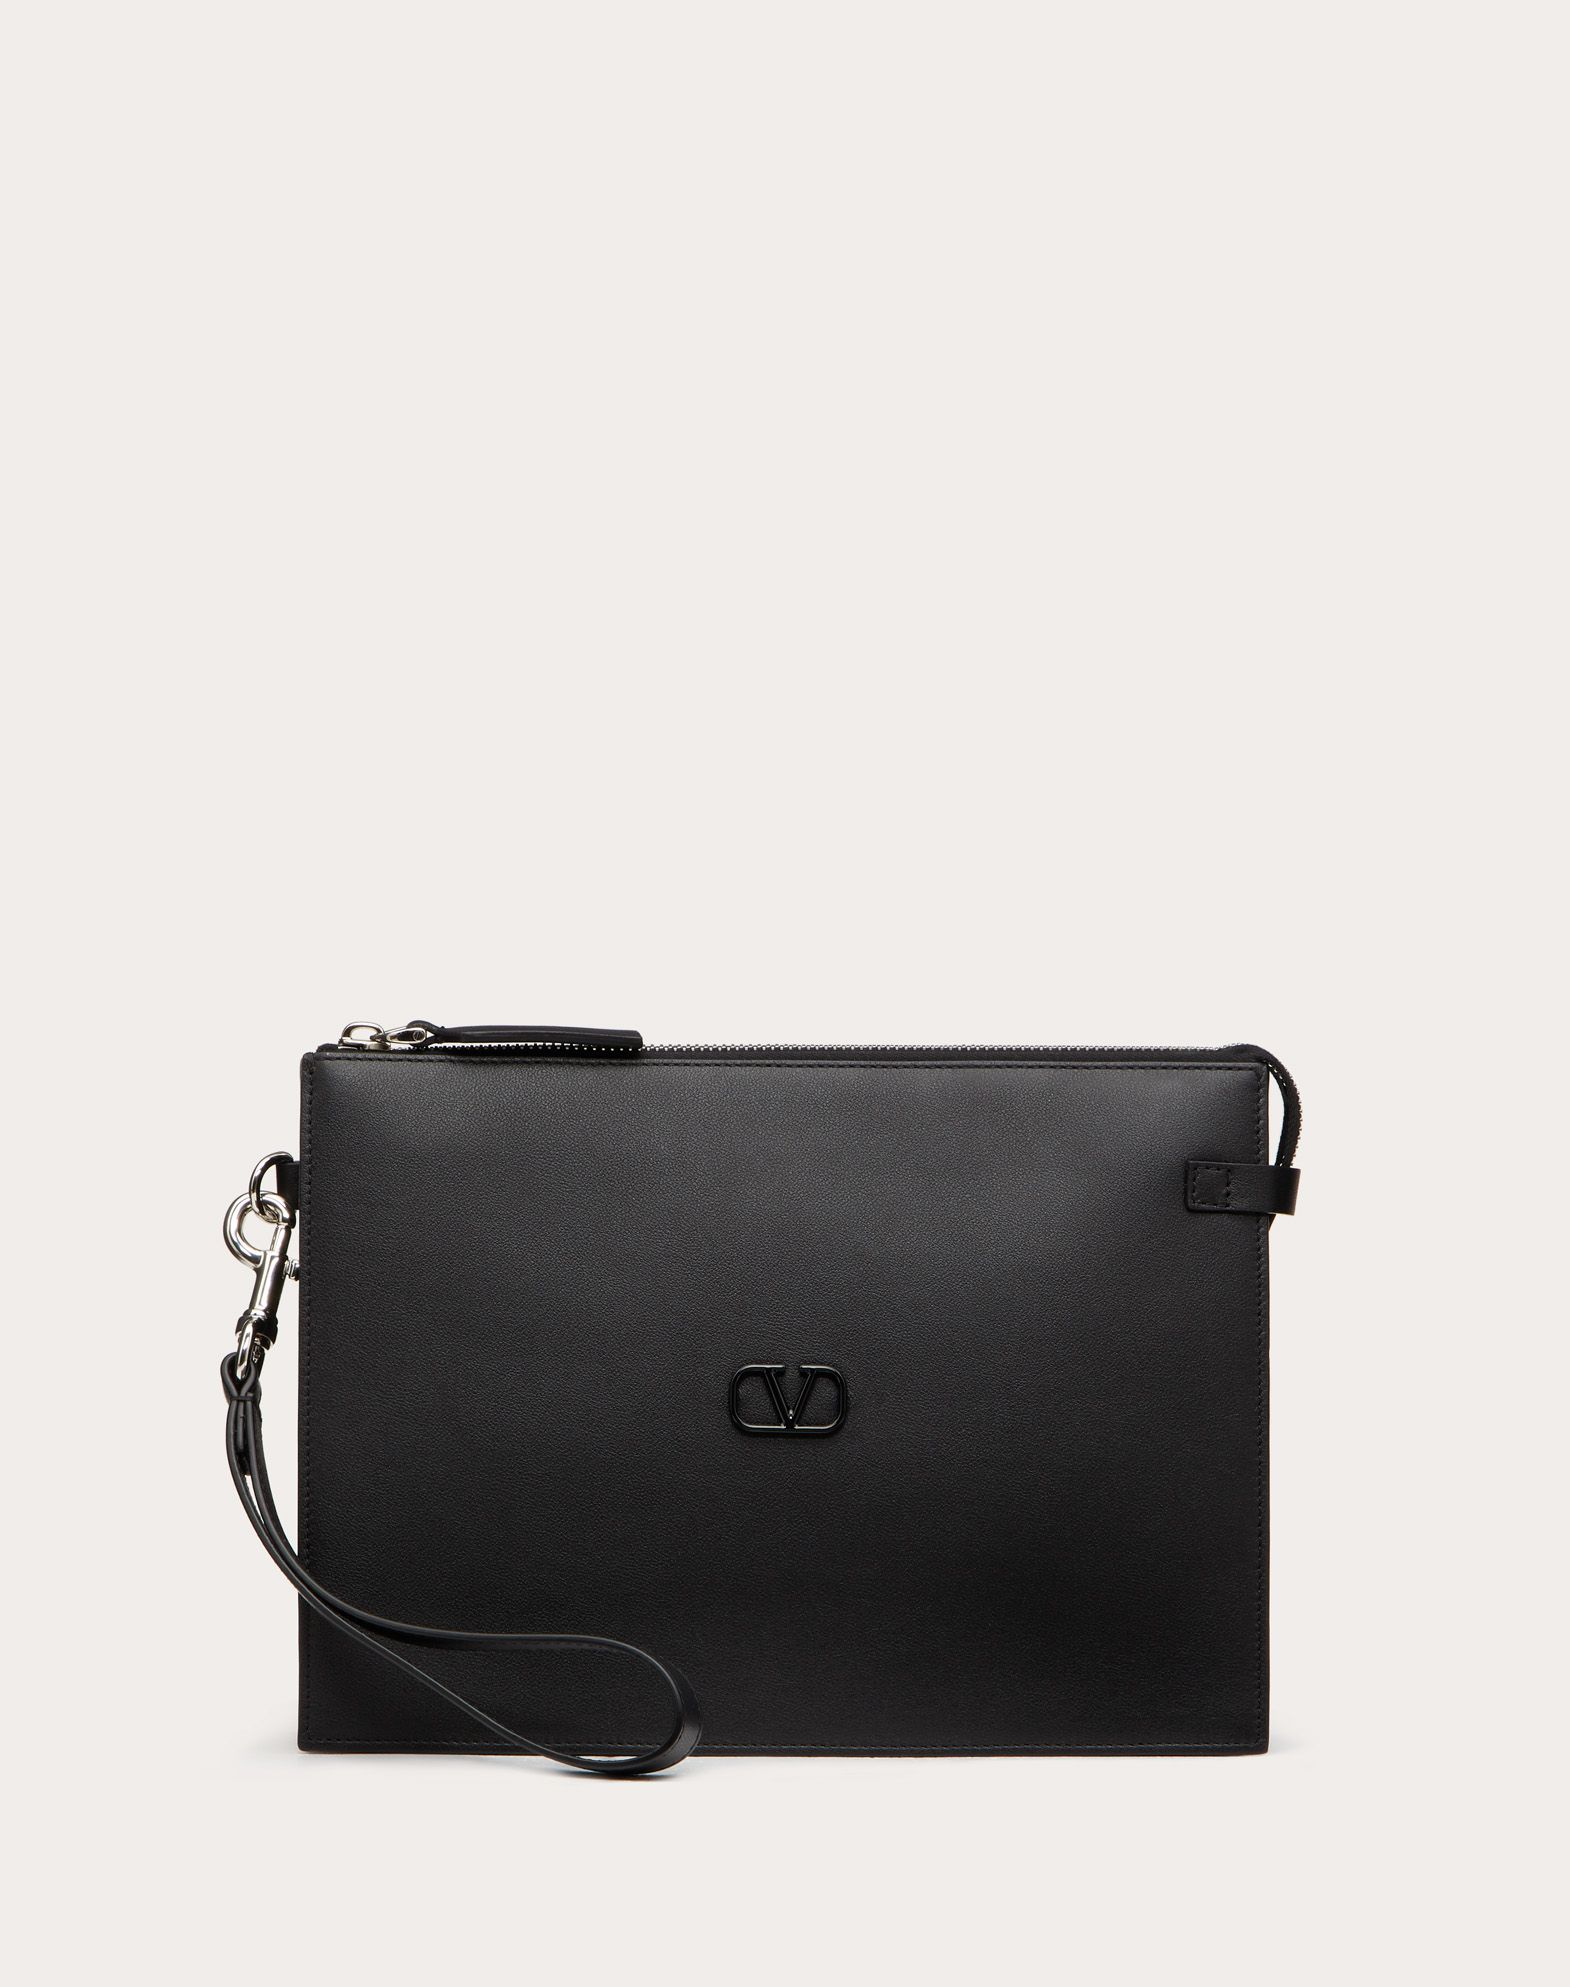 Leather VLOGO pouch